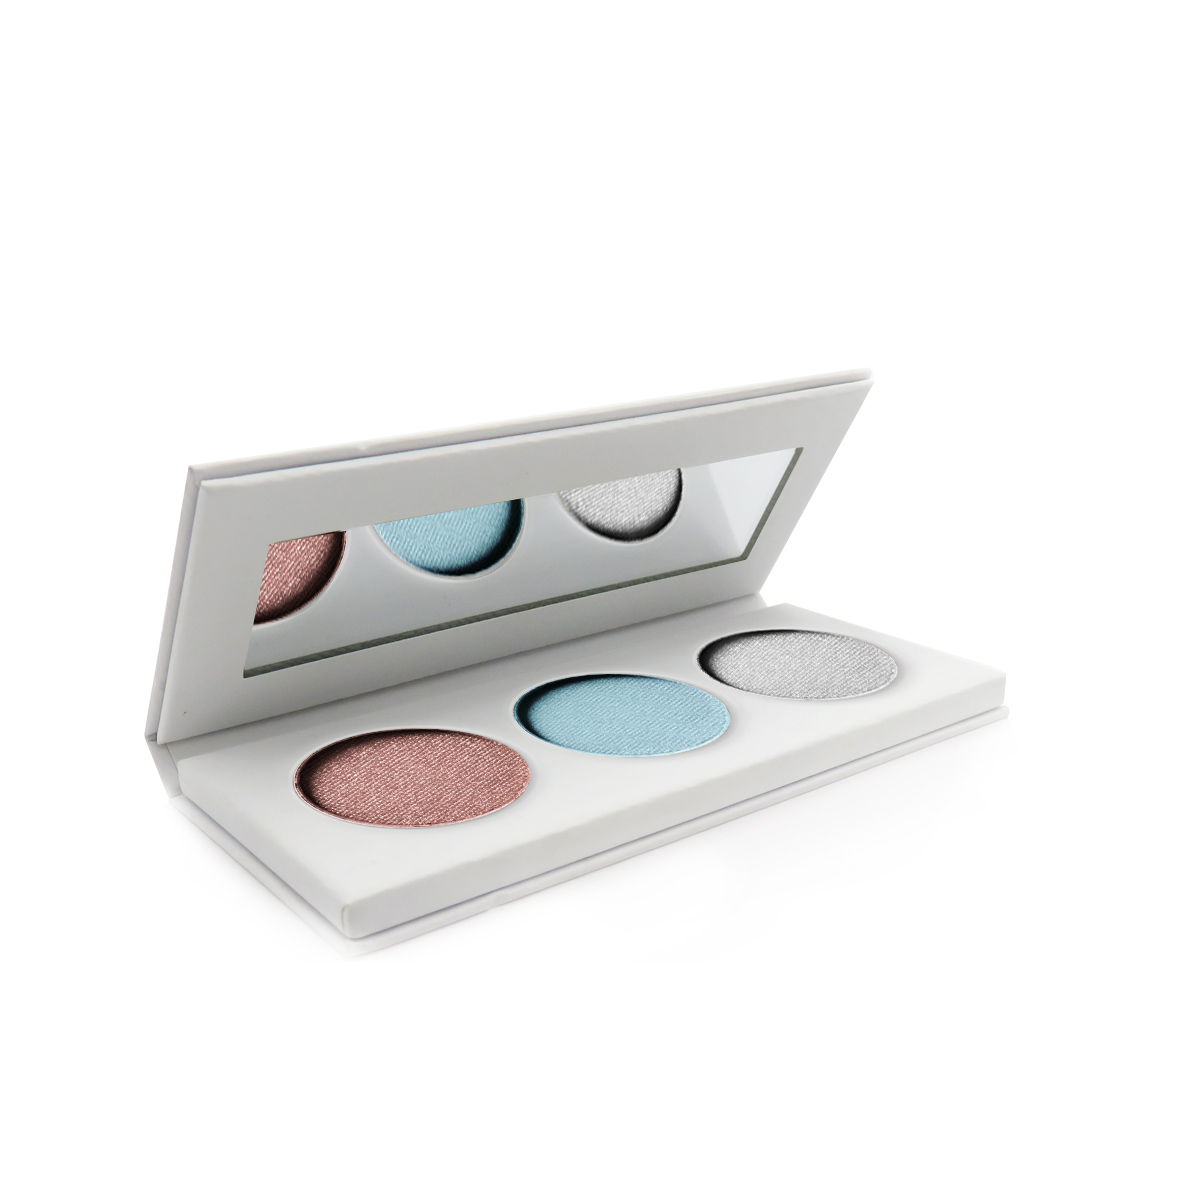 PL-114, 3 PC Fully Customizable Eyeshadow Pallet